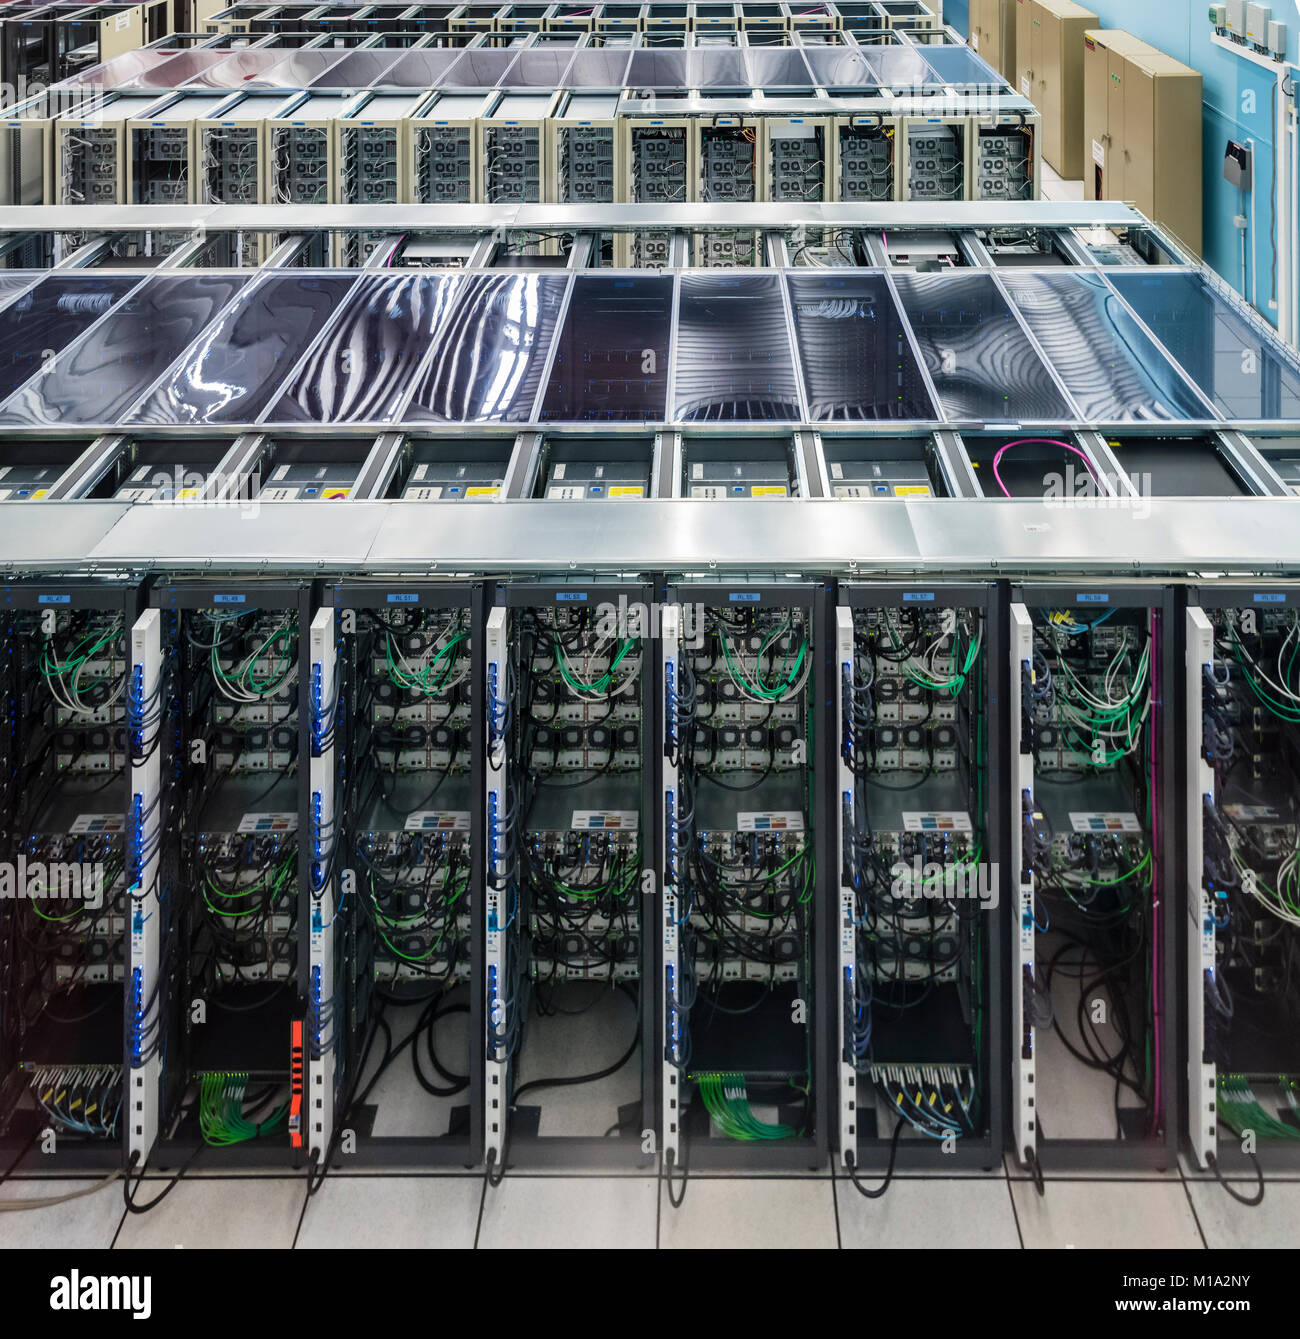 Geneva, Switzerland - 26 Jan 2018: Servers at the data centre of the European Organization for Nuclear Research Stock Photo